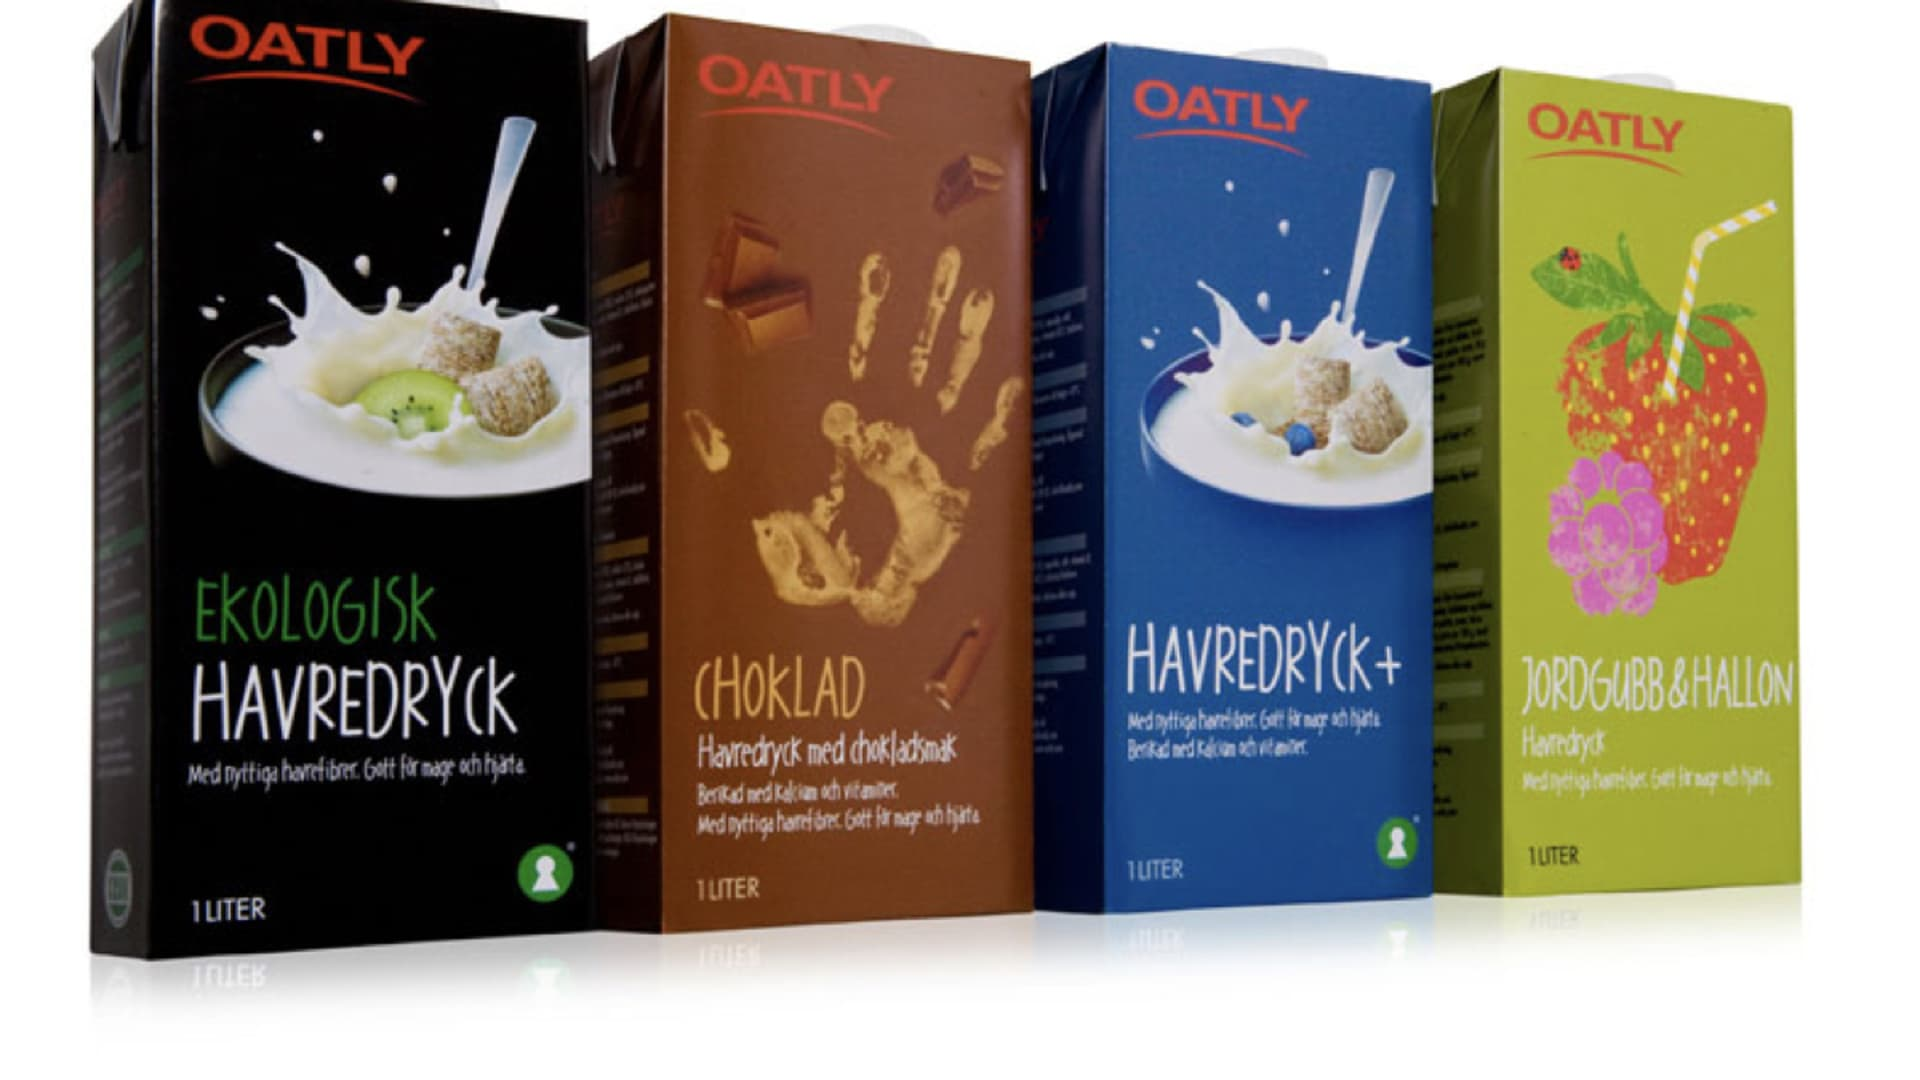 Oatly packaging before the rebrand.